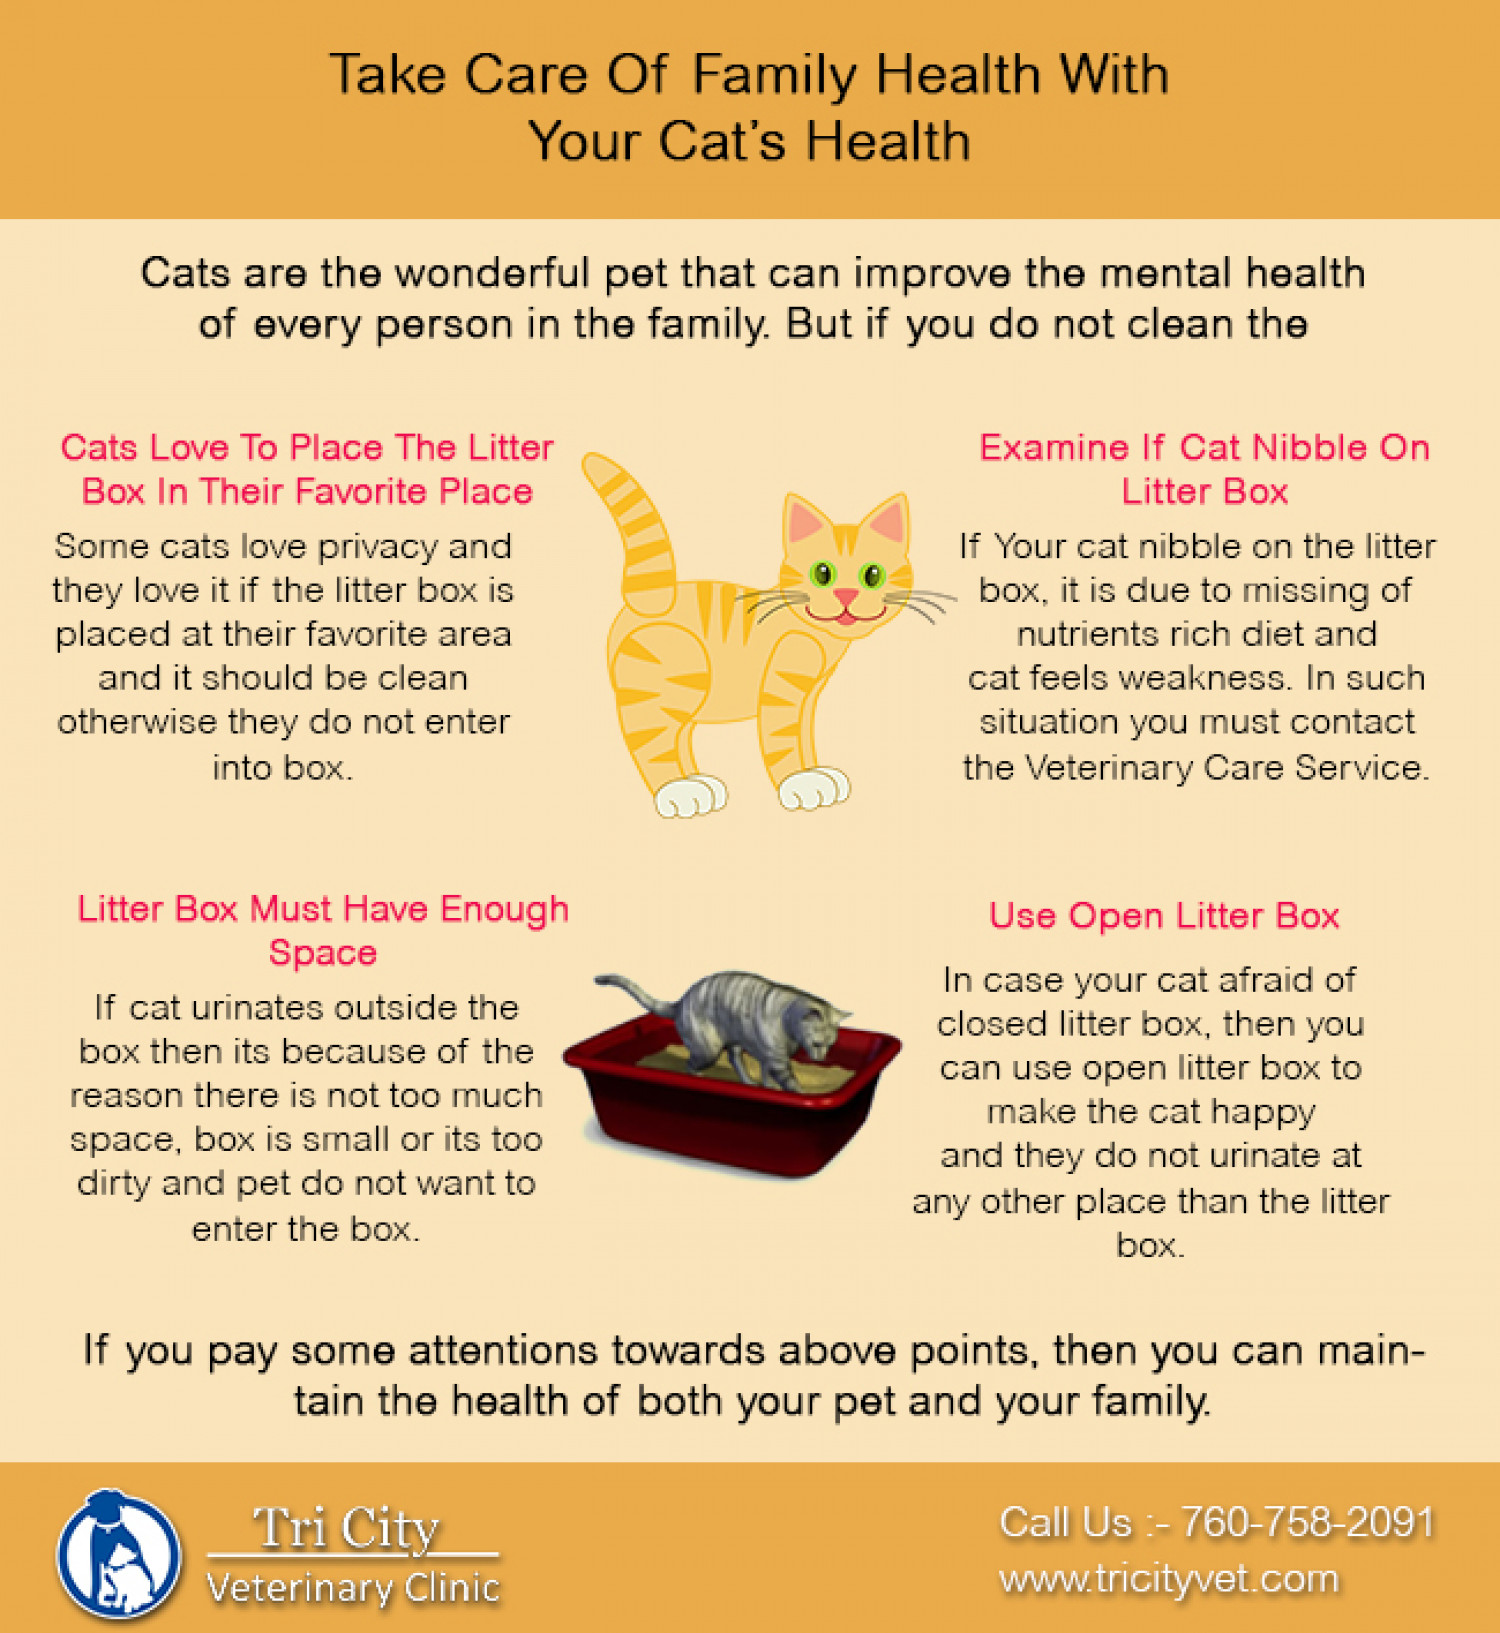 Take Care Of Family And Cat Health Infographic